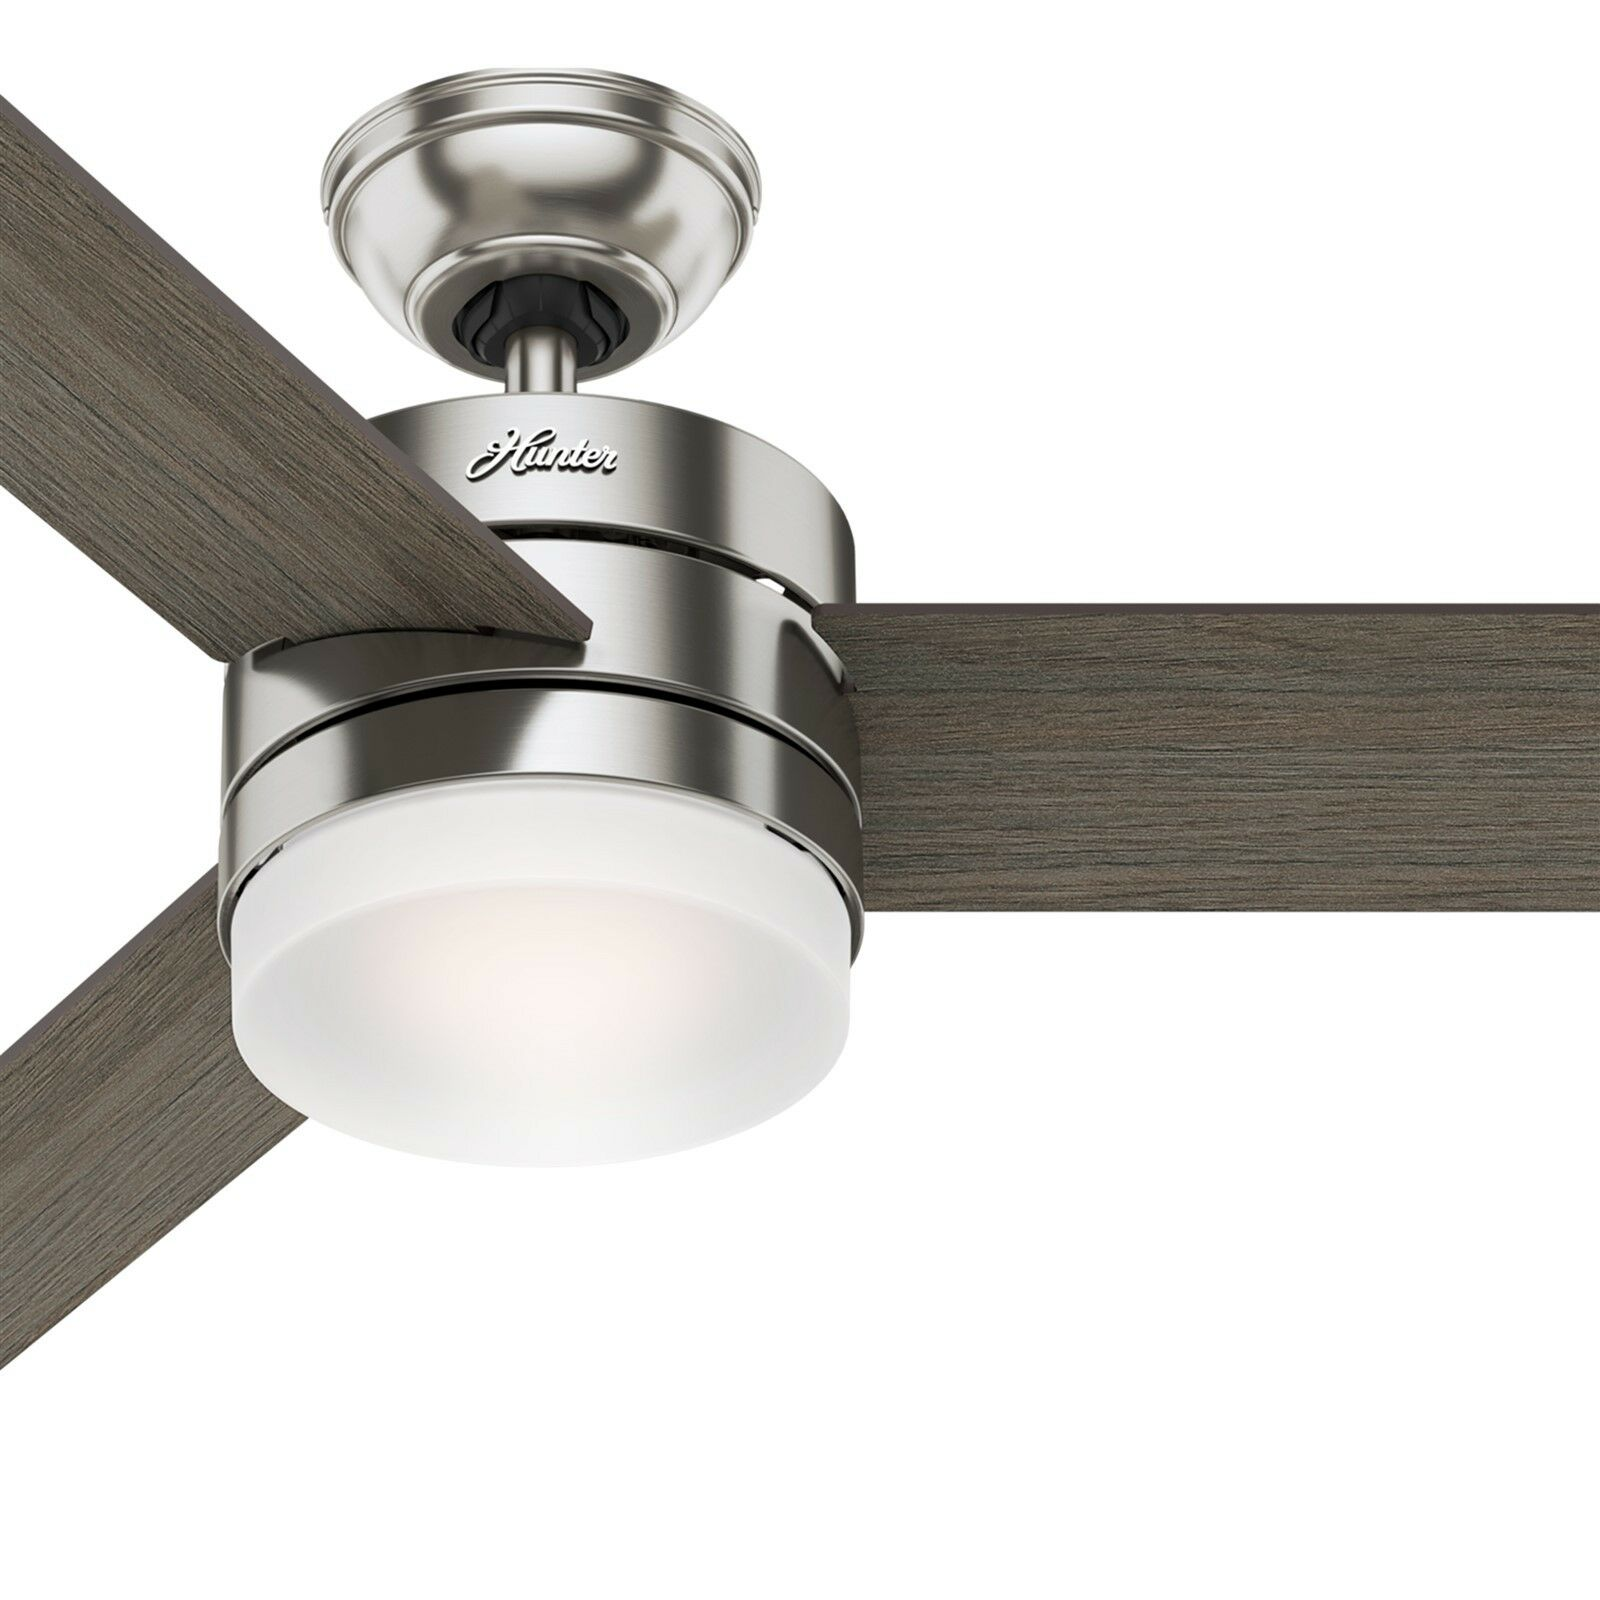 Hunter 54 Contemporary Ceiling Fan With Remote Control In Brushed Nickel Certi For Sale Online Ebay